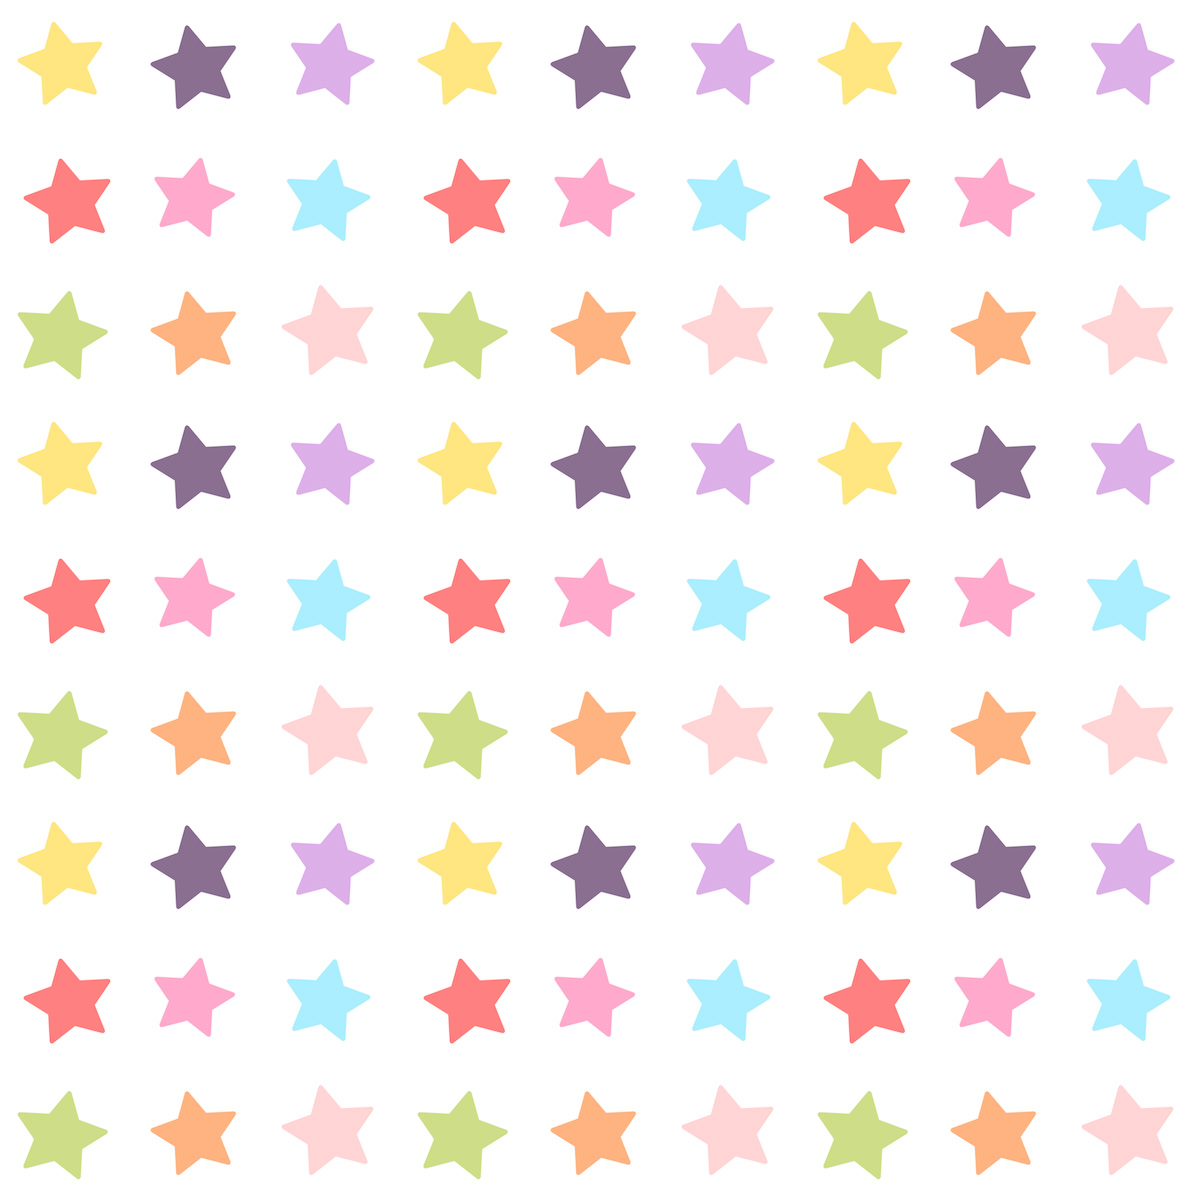 Decorations For Home Free Digital Star Candy Scrapbooking Paper Ausdruckbares